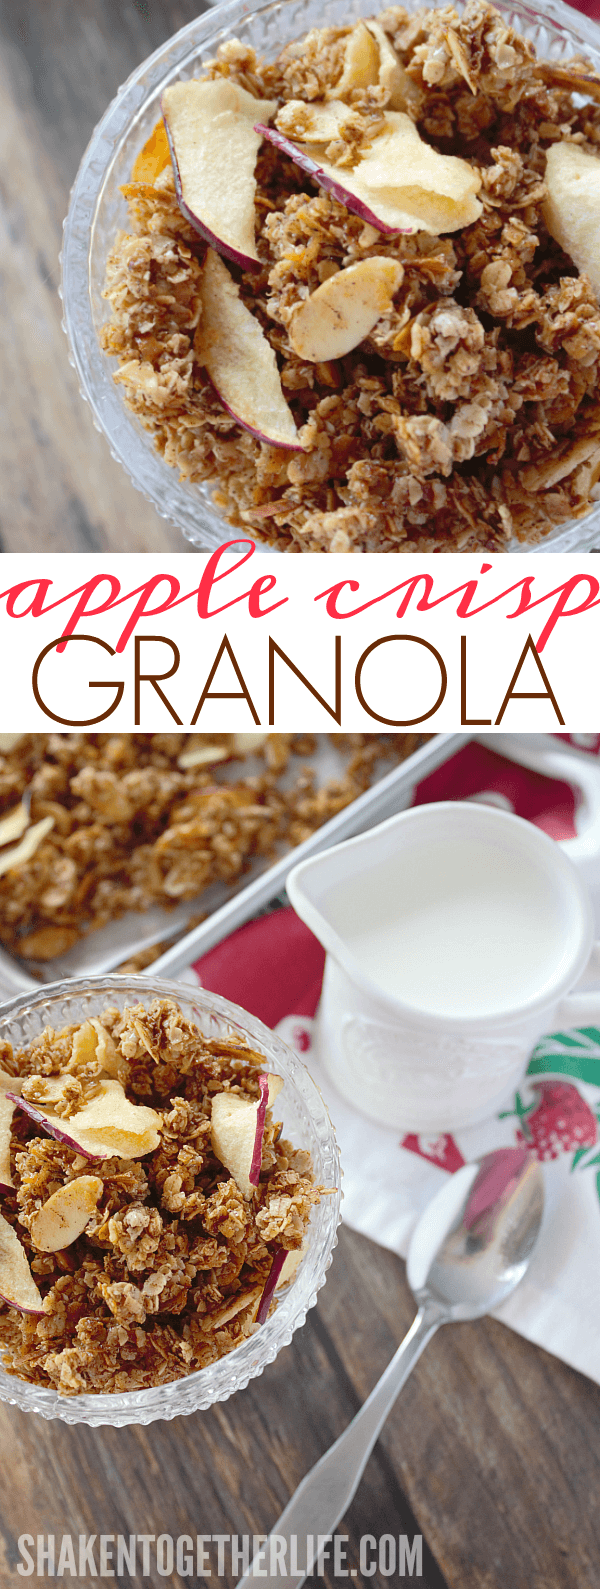 Homemade Apple Crisp Granola - a big ol' pan of toasted oats, almonds ...